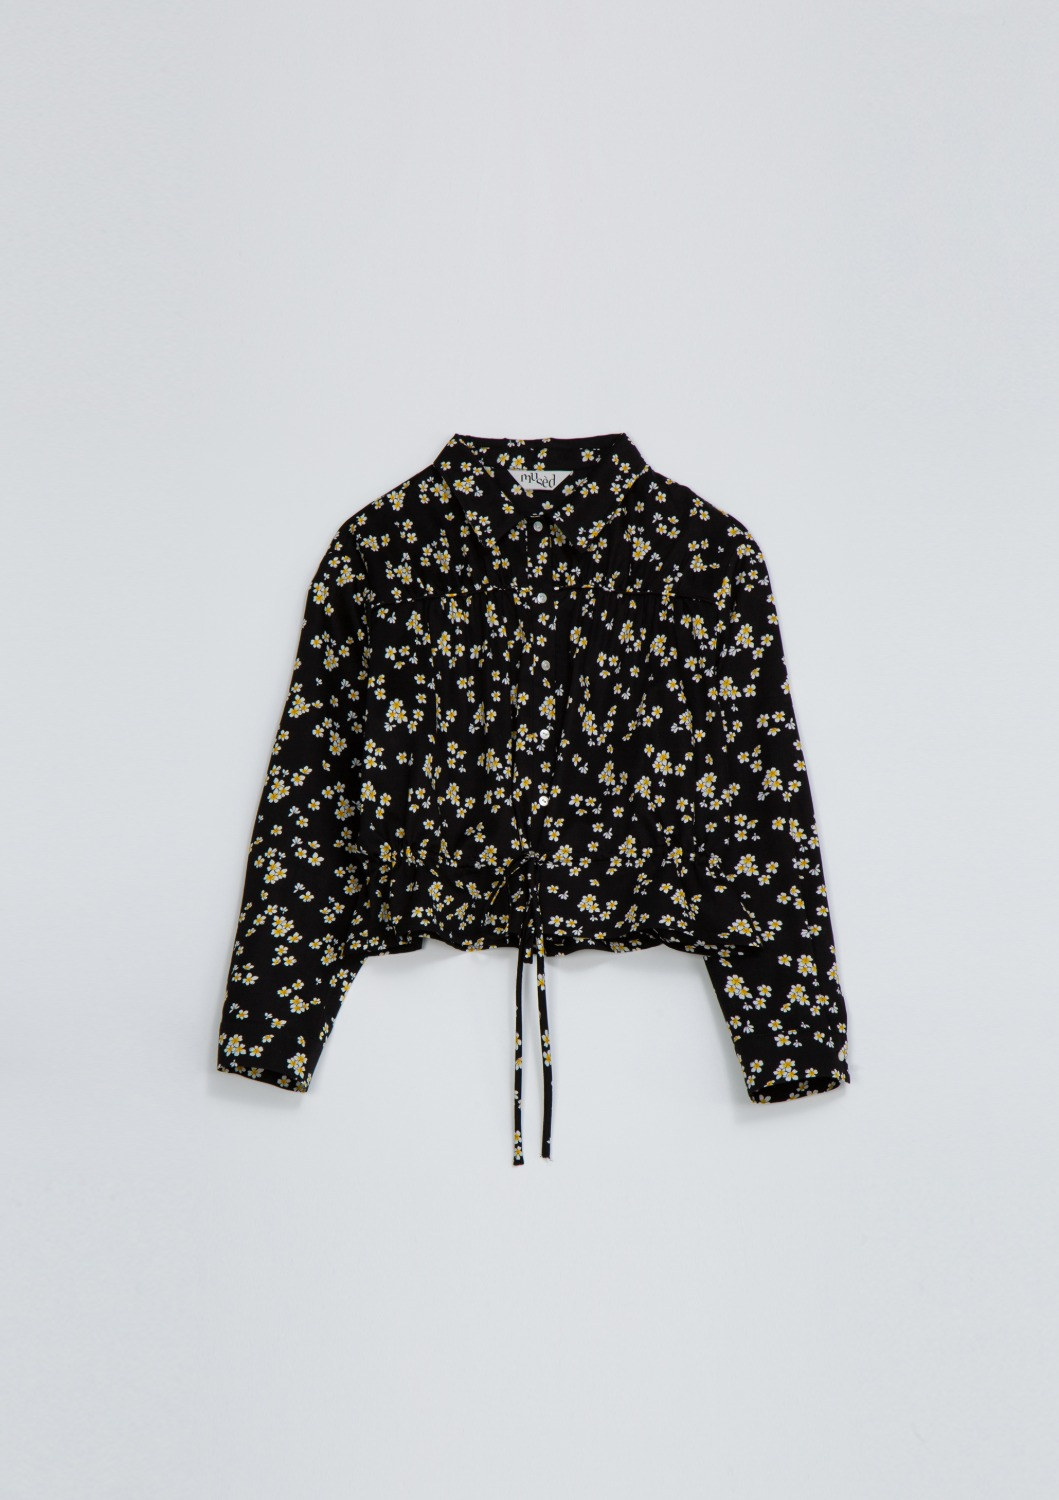 Bien Shirt Jacket - Black Floral Artwork